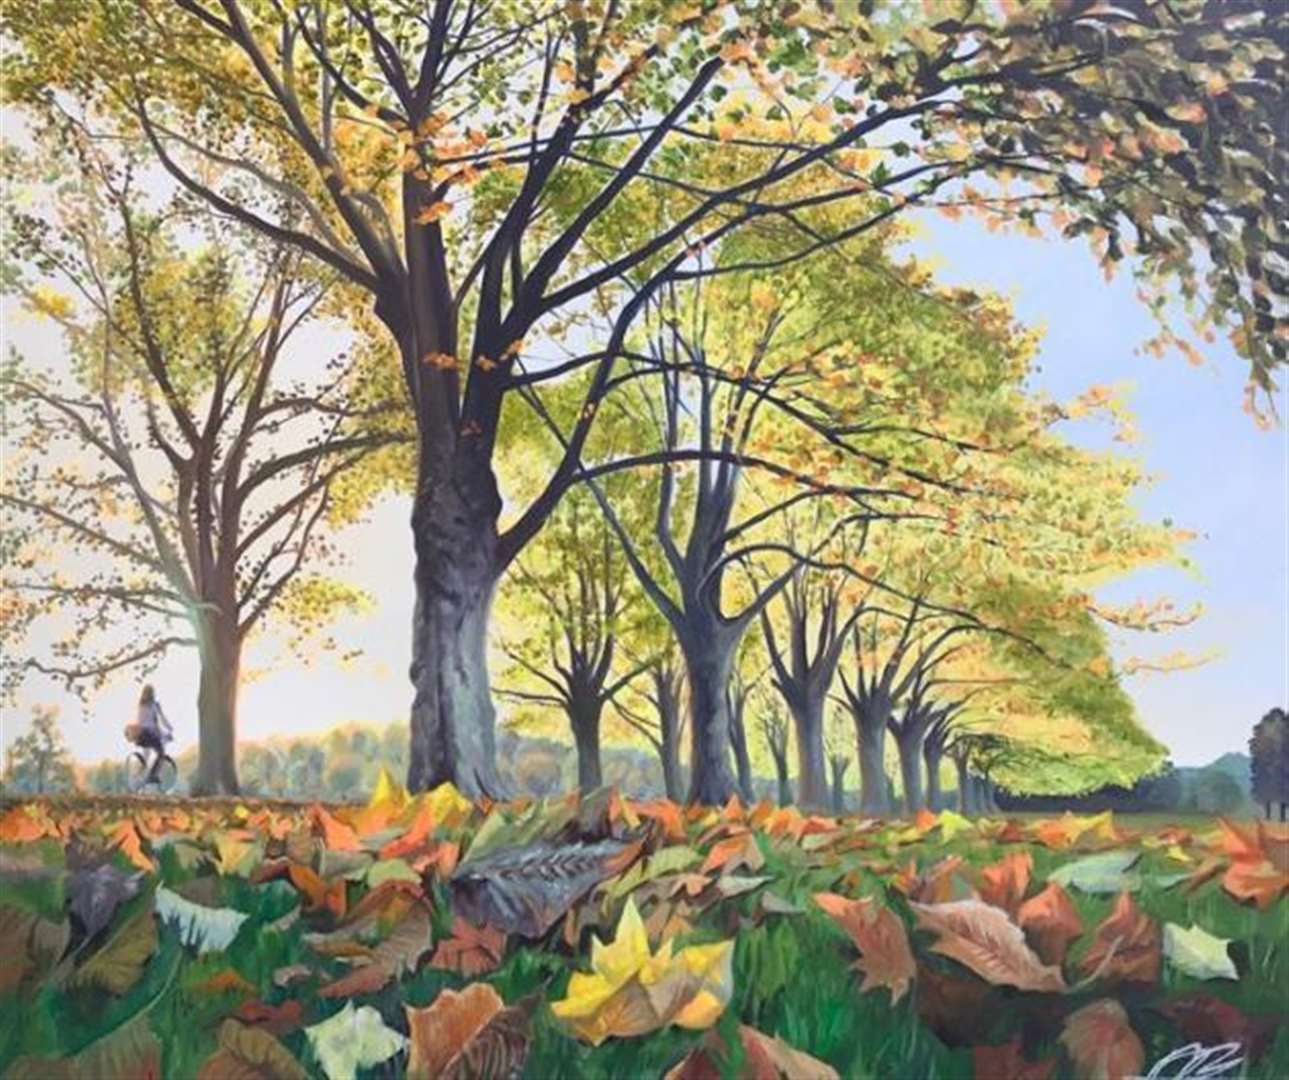 Cambridge artist to showcase the magic of trees in upcoming exhibition